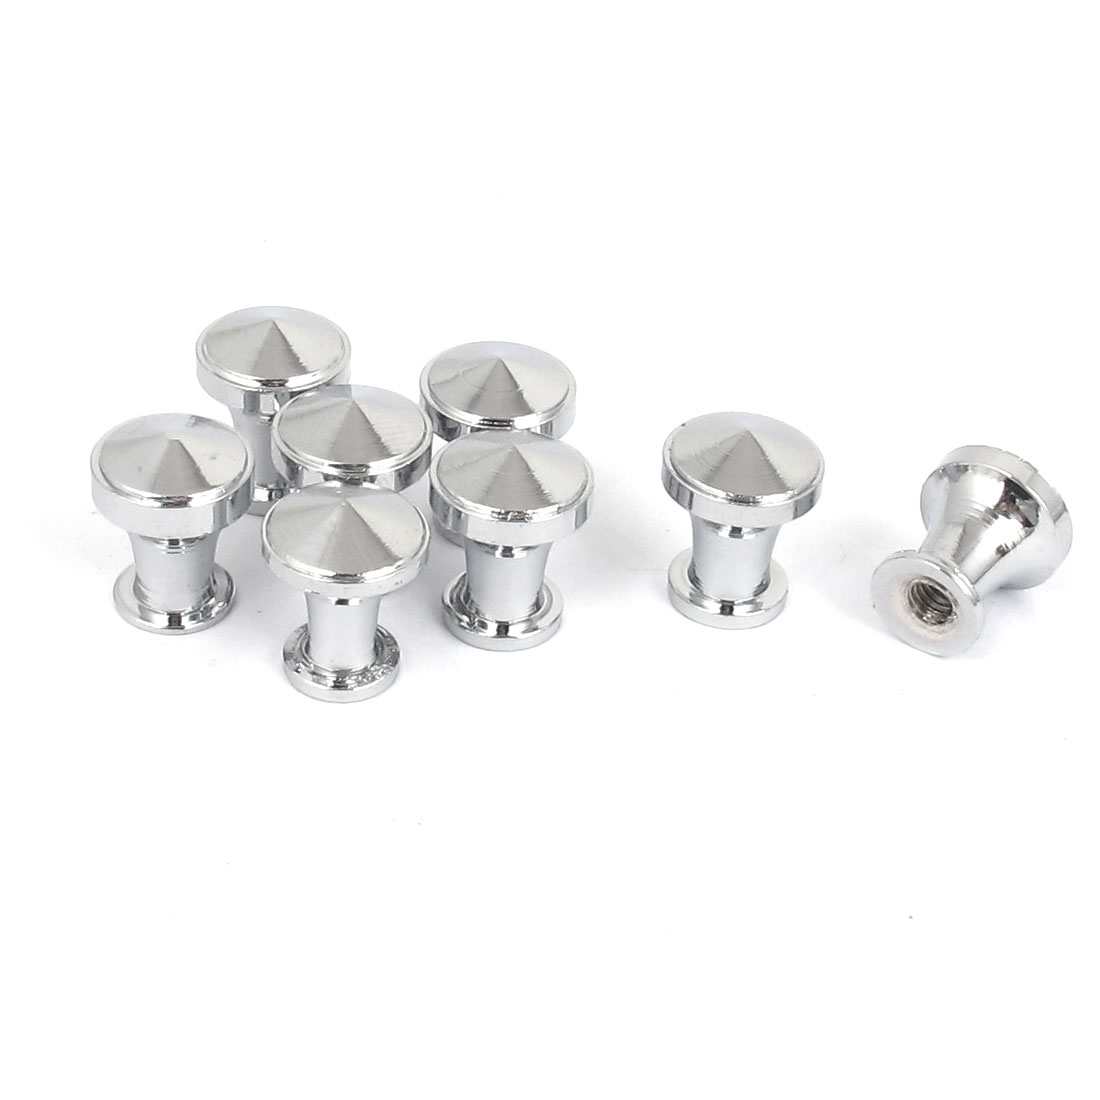 12mm Dia Knob Furniture Kitchen Cabinet Drawer Door Chrome Plated Pull Handle 8pcs